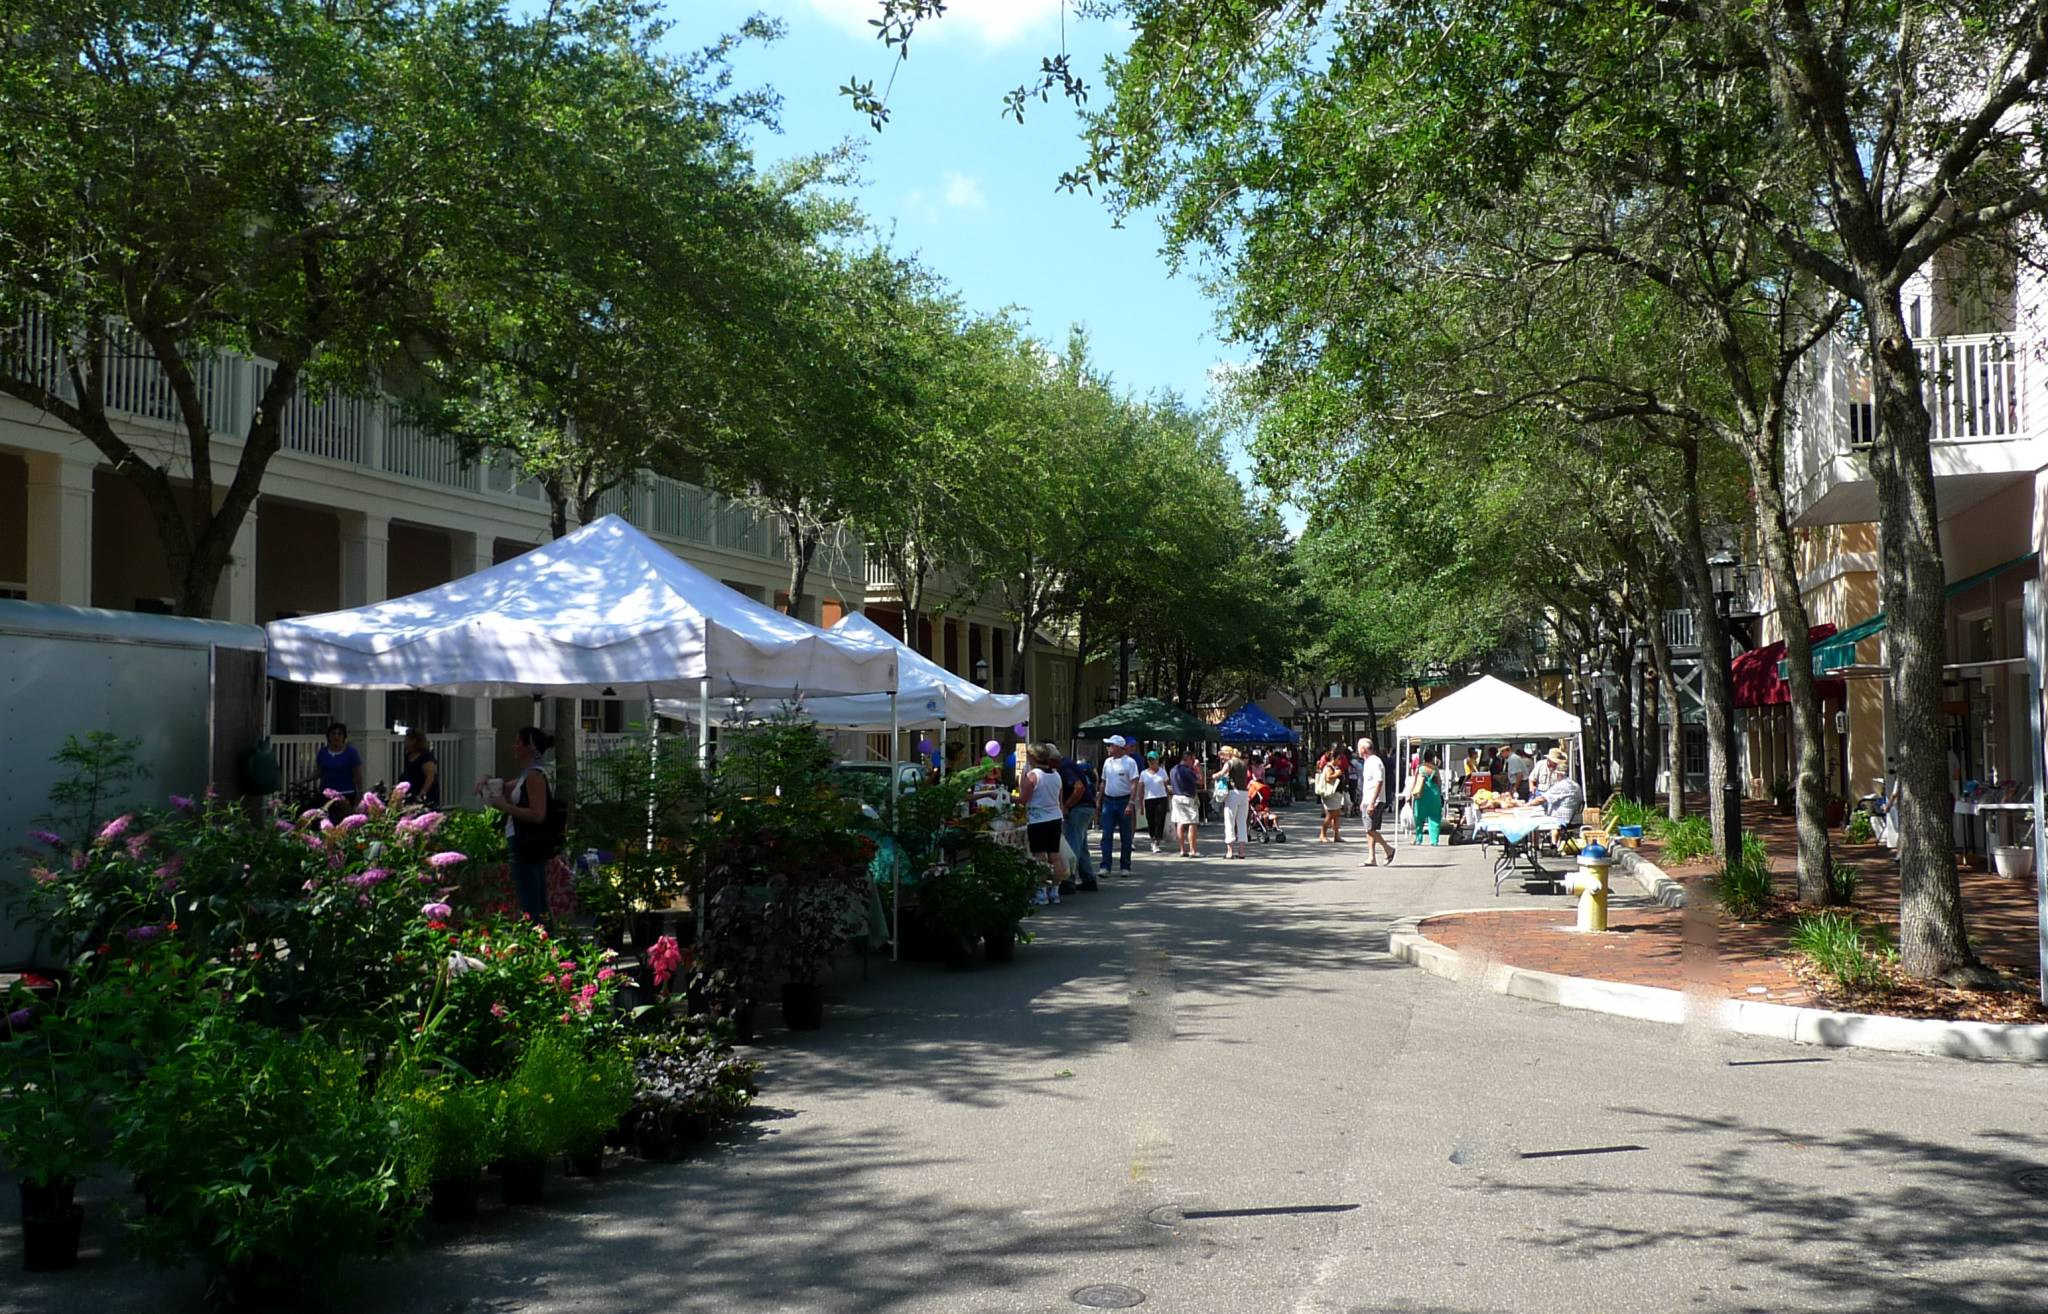 Haile Village Center farmers market